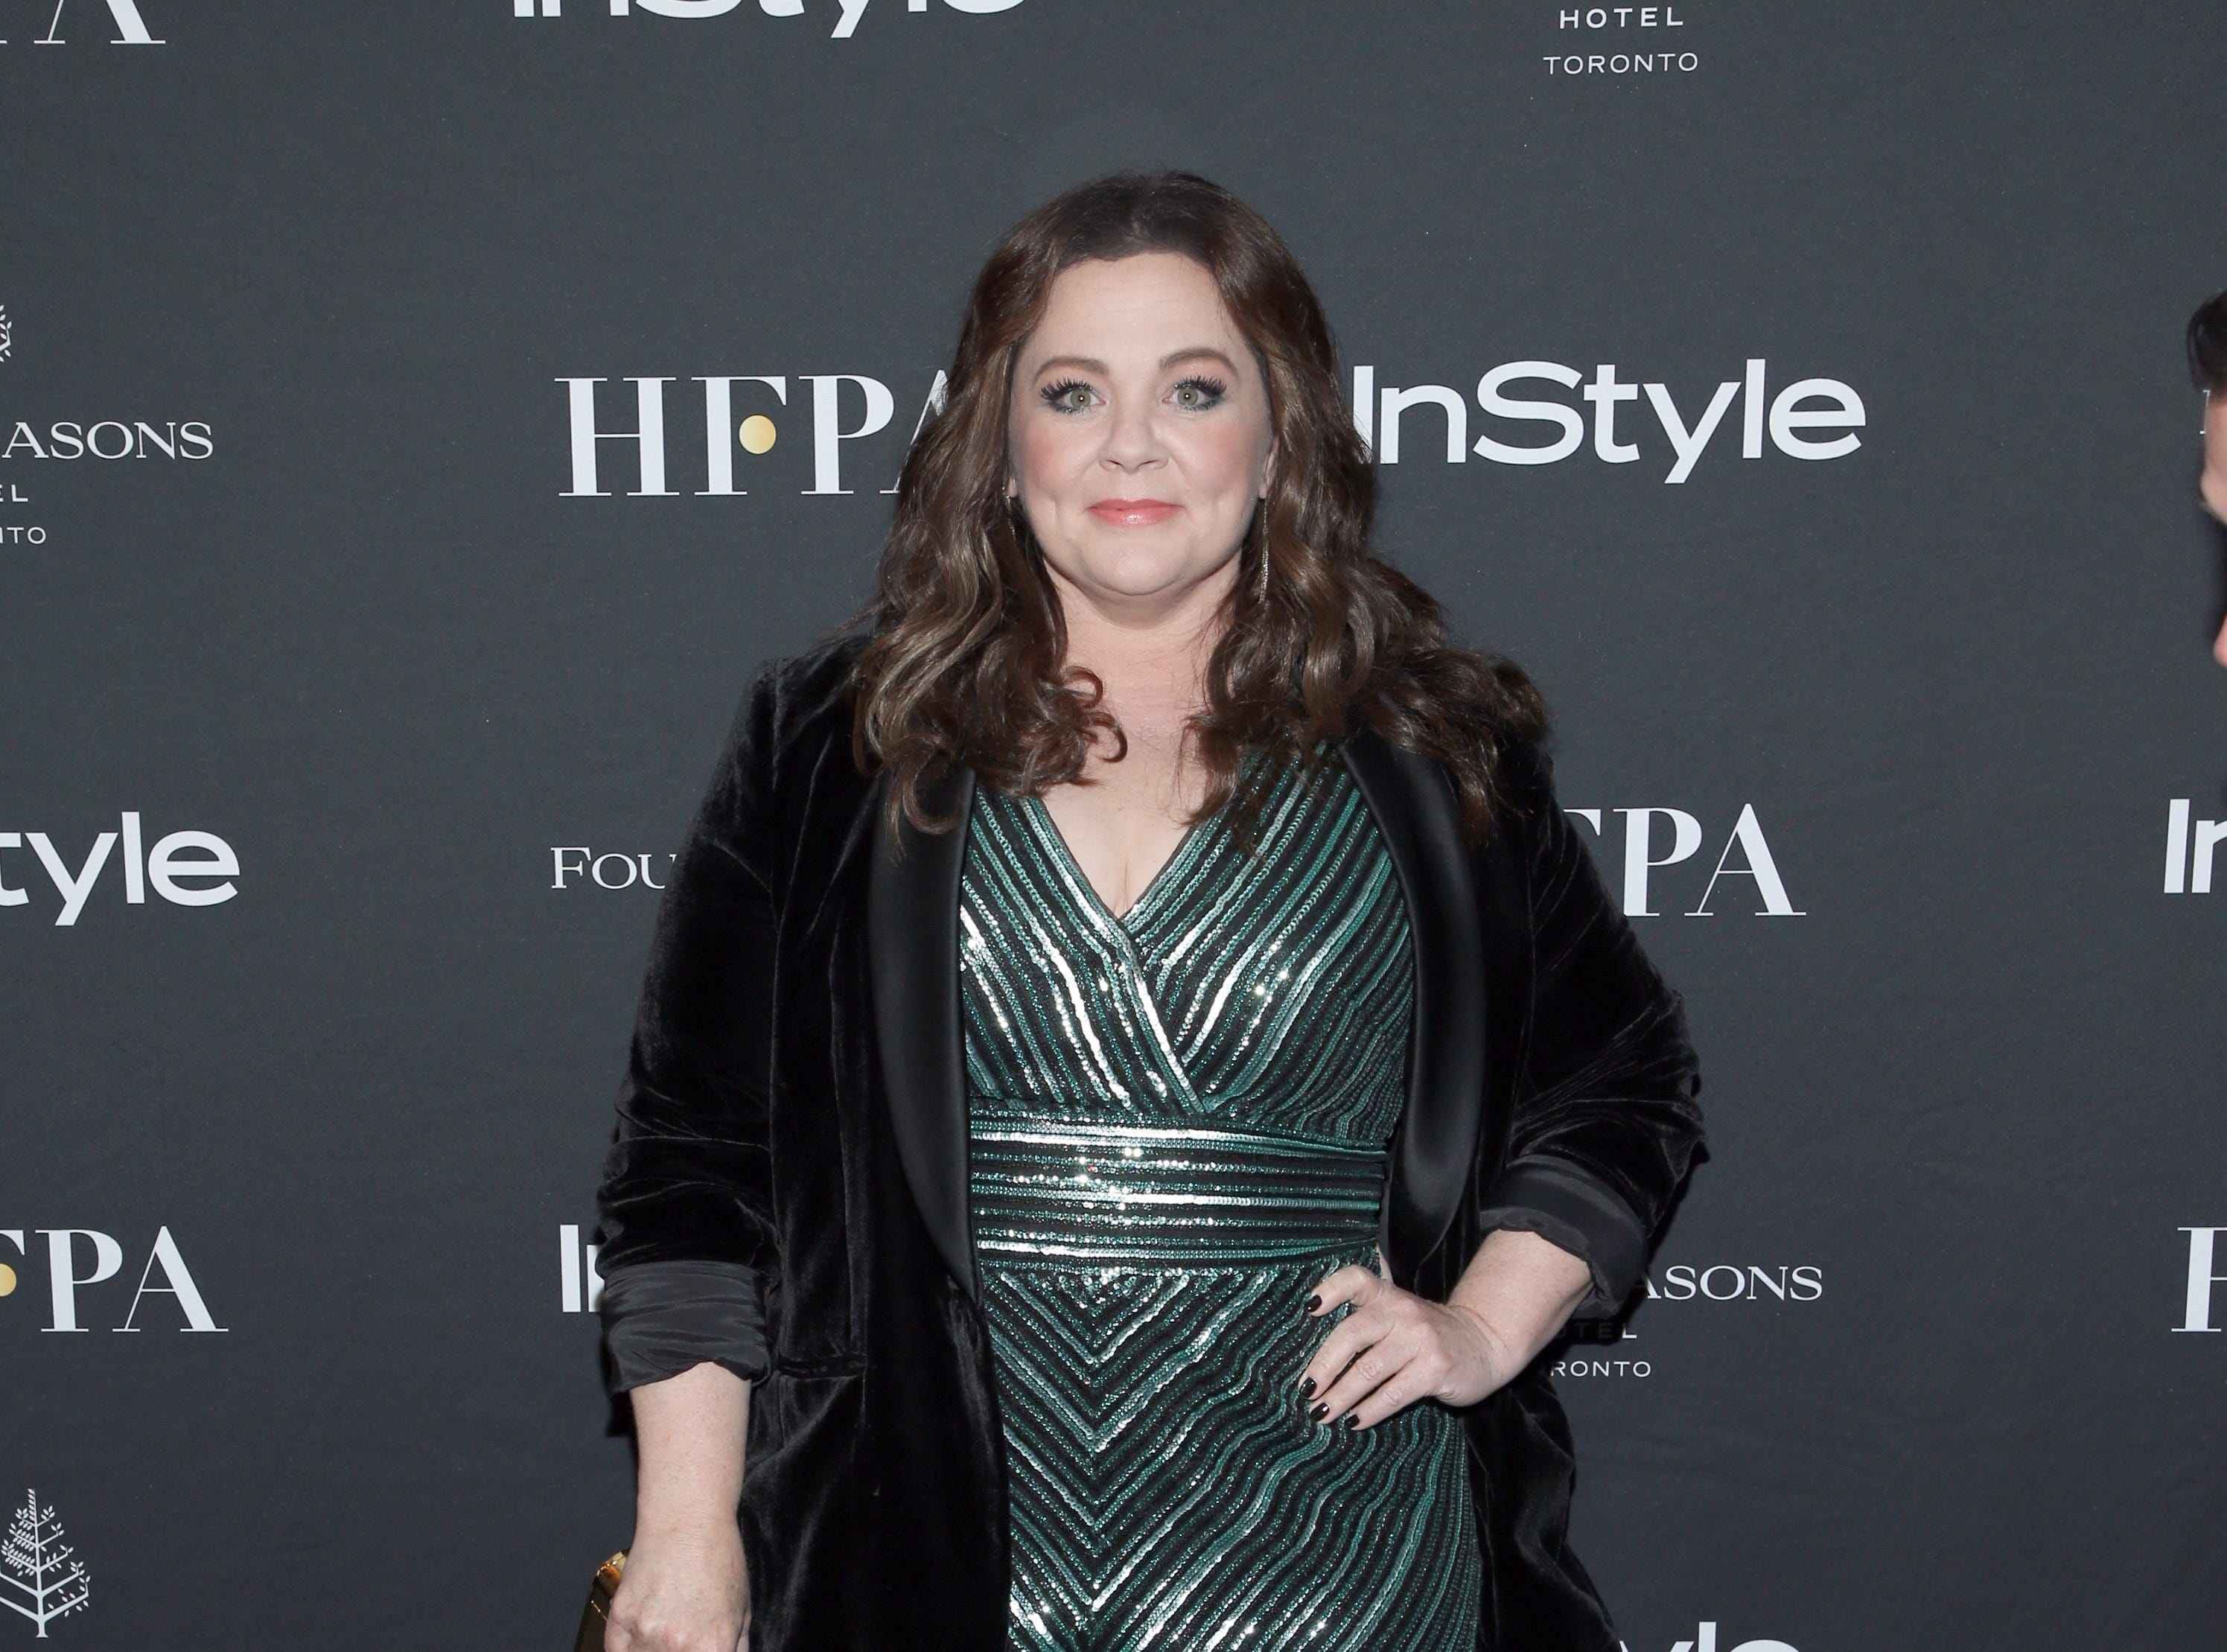 TORONTO, ON - SEPTEMBER 08: Melissa McCarthy attends The Hollywood Foreign Press Association and InStyle Party during 2018 Toronto International Film Festival at Four Seasons Hotel on September 8, 2018 in Toronto, Canada.  (Photo by Phillip Faraone/WireImage) ORG XMIT: 775218499 ORIG FILE ID: 1029584114